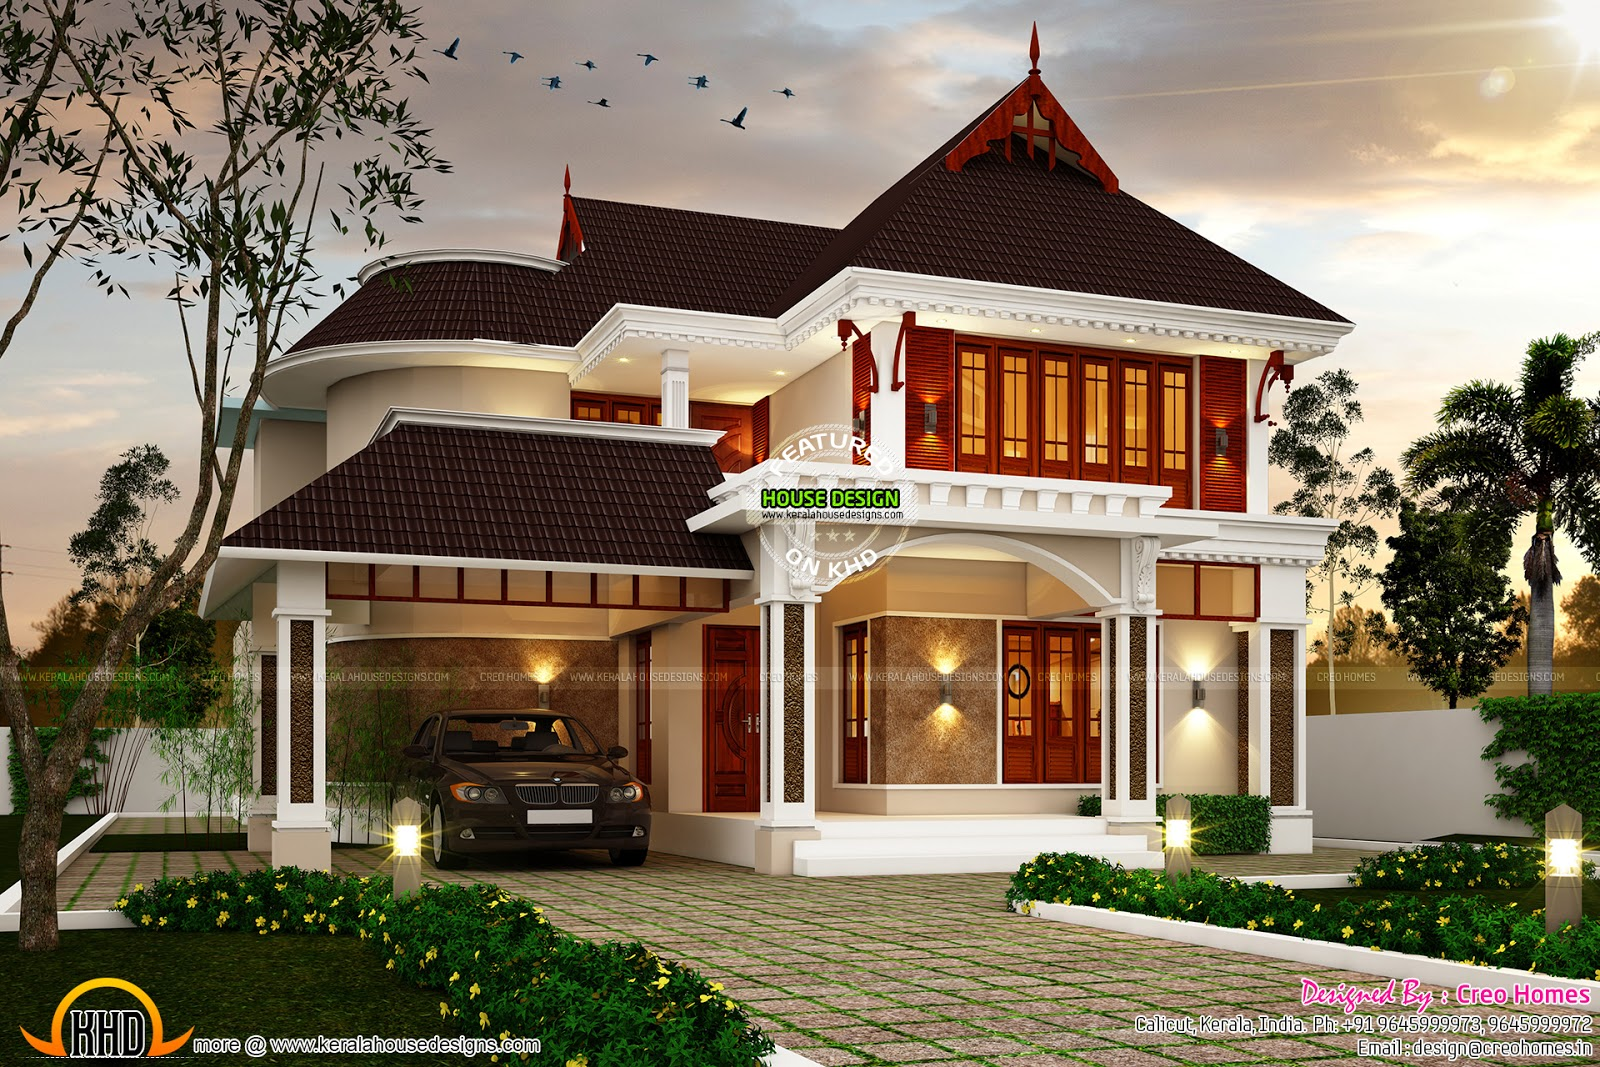 Superb dream house plan kerala home design and floor plans for Home designs 2015